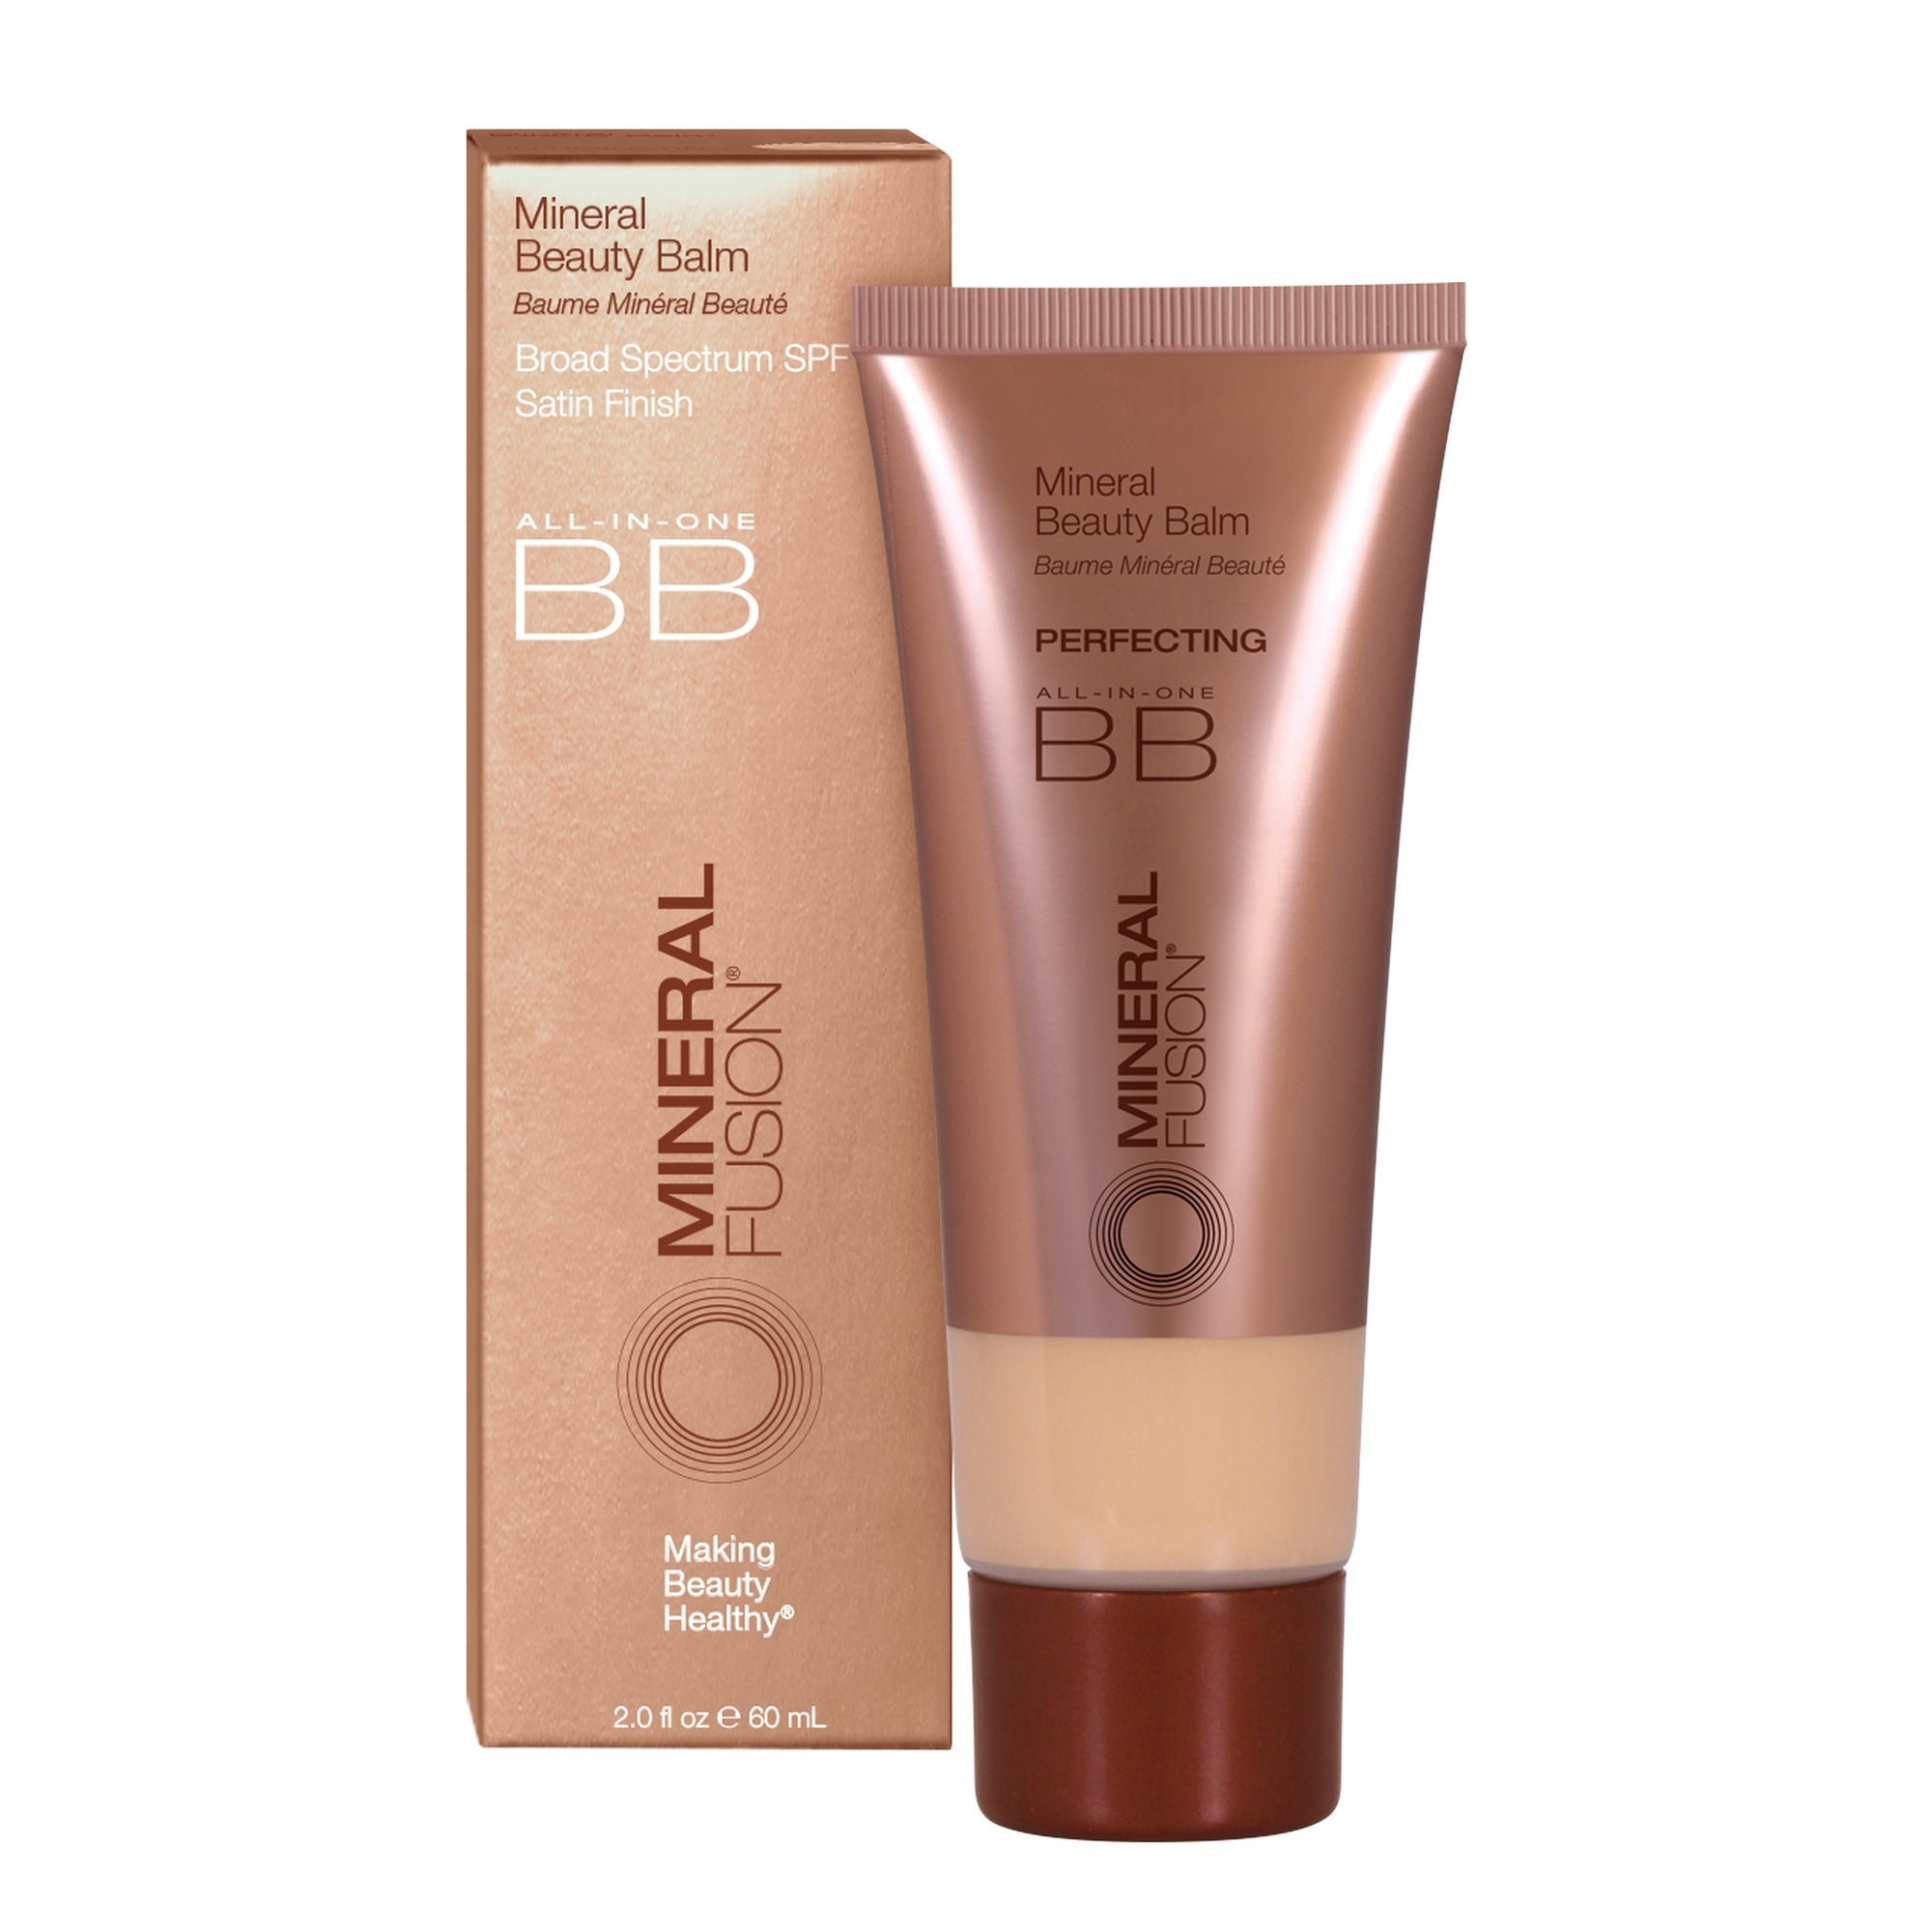 Beauty Balm - Mineral Fusion